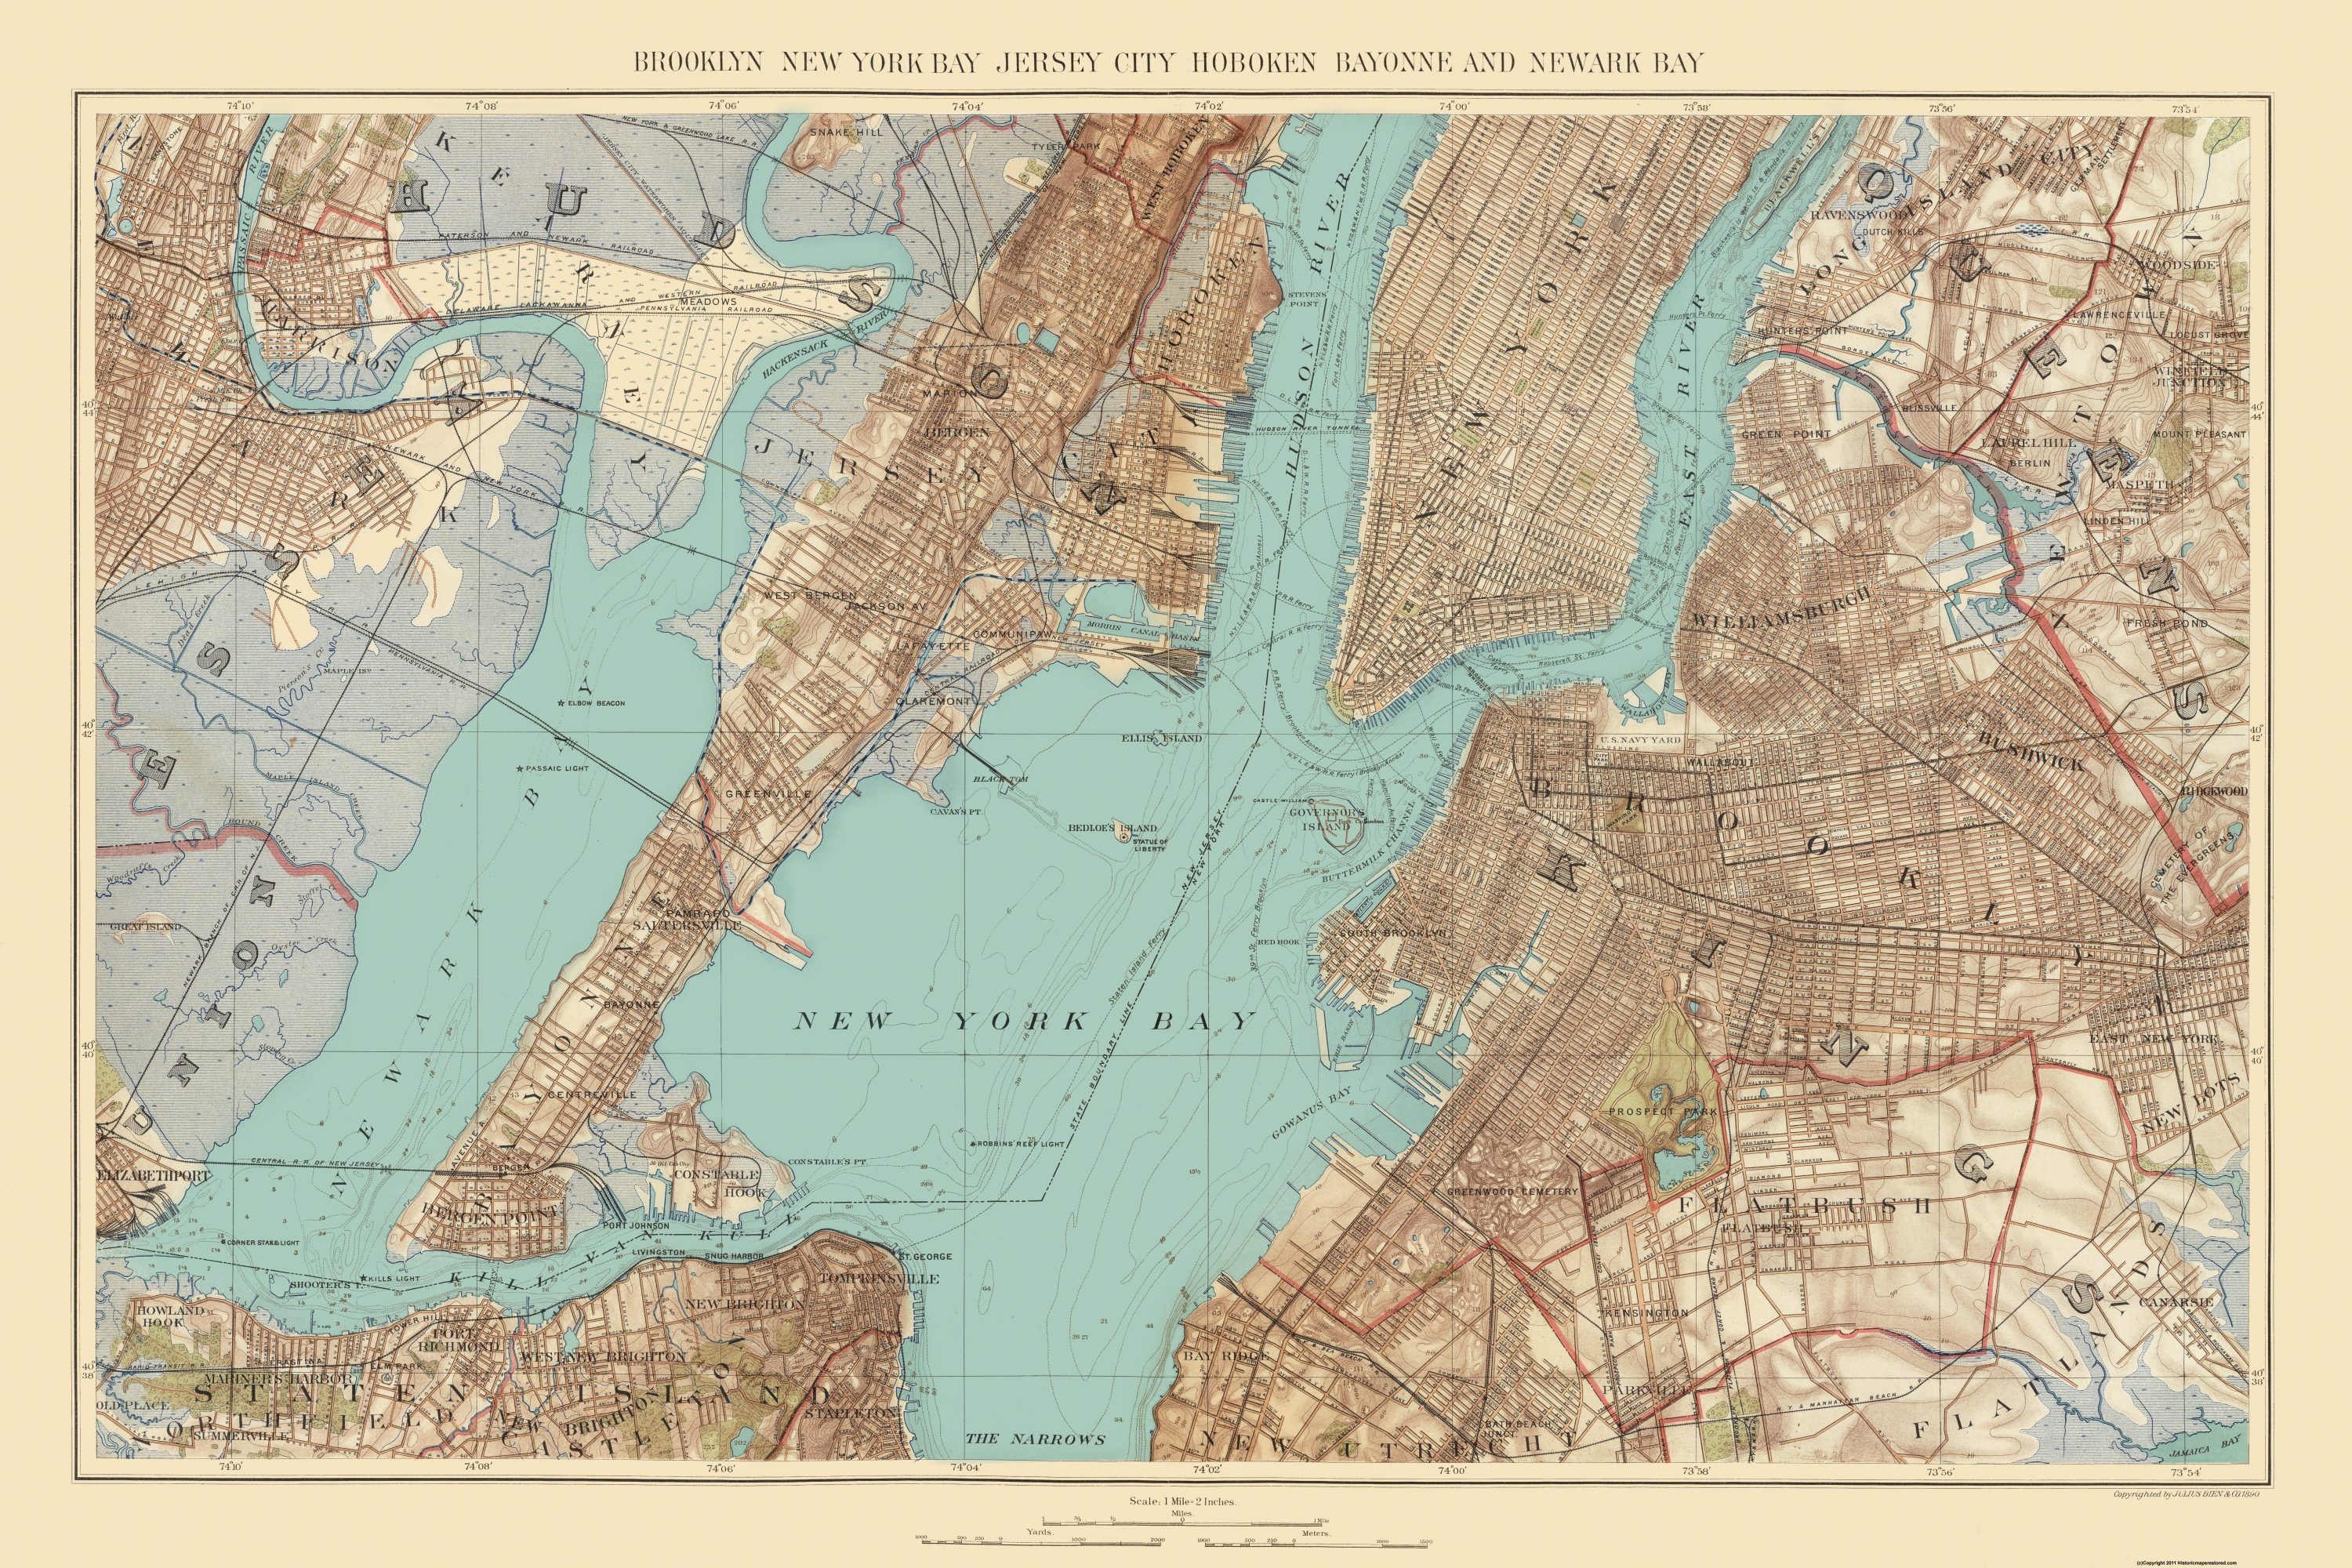 Old Map Of New York.Jersey City Hoboken New York Bay New Jersey Bien 1890 34 5 X 23